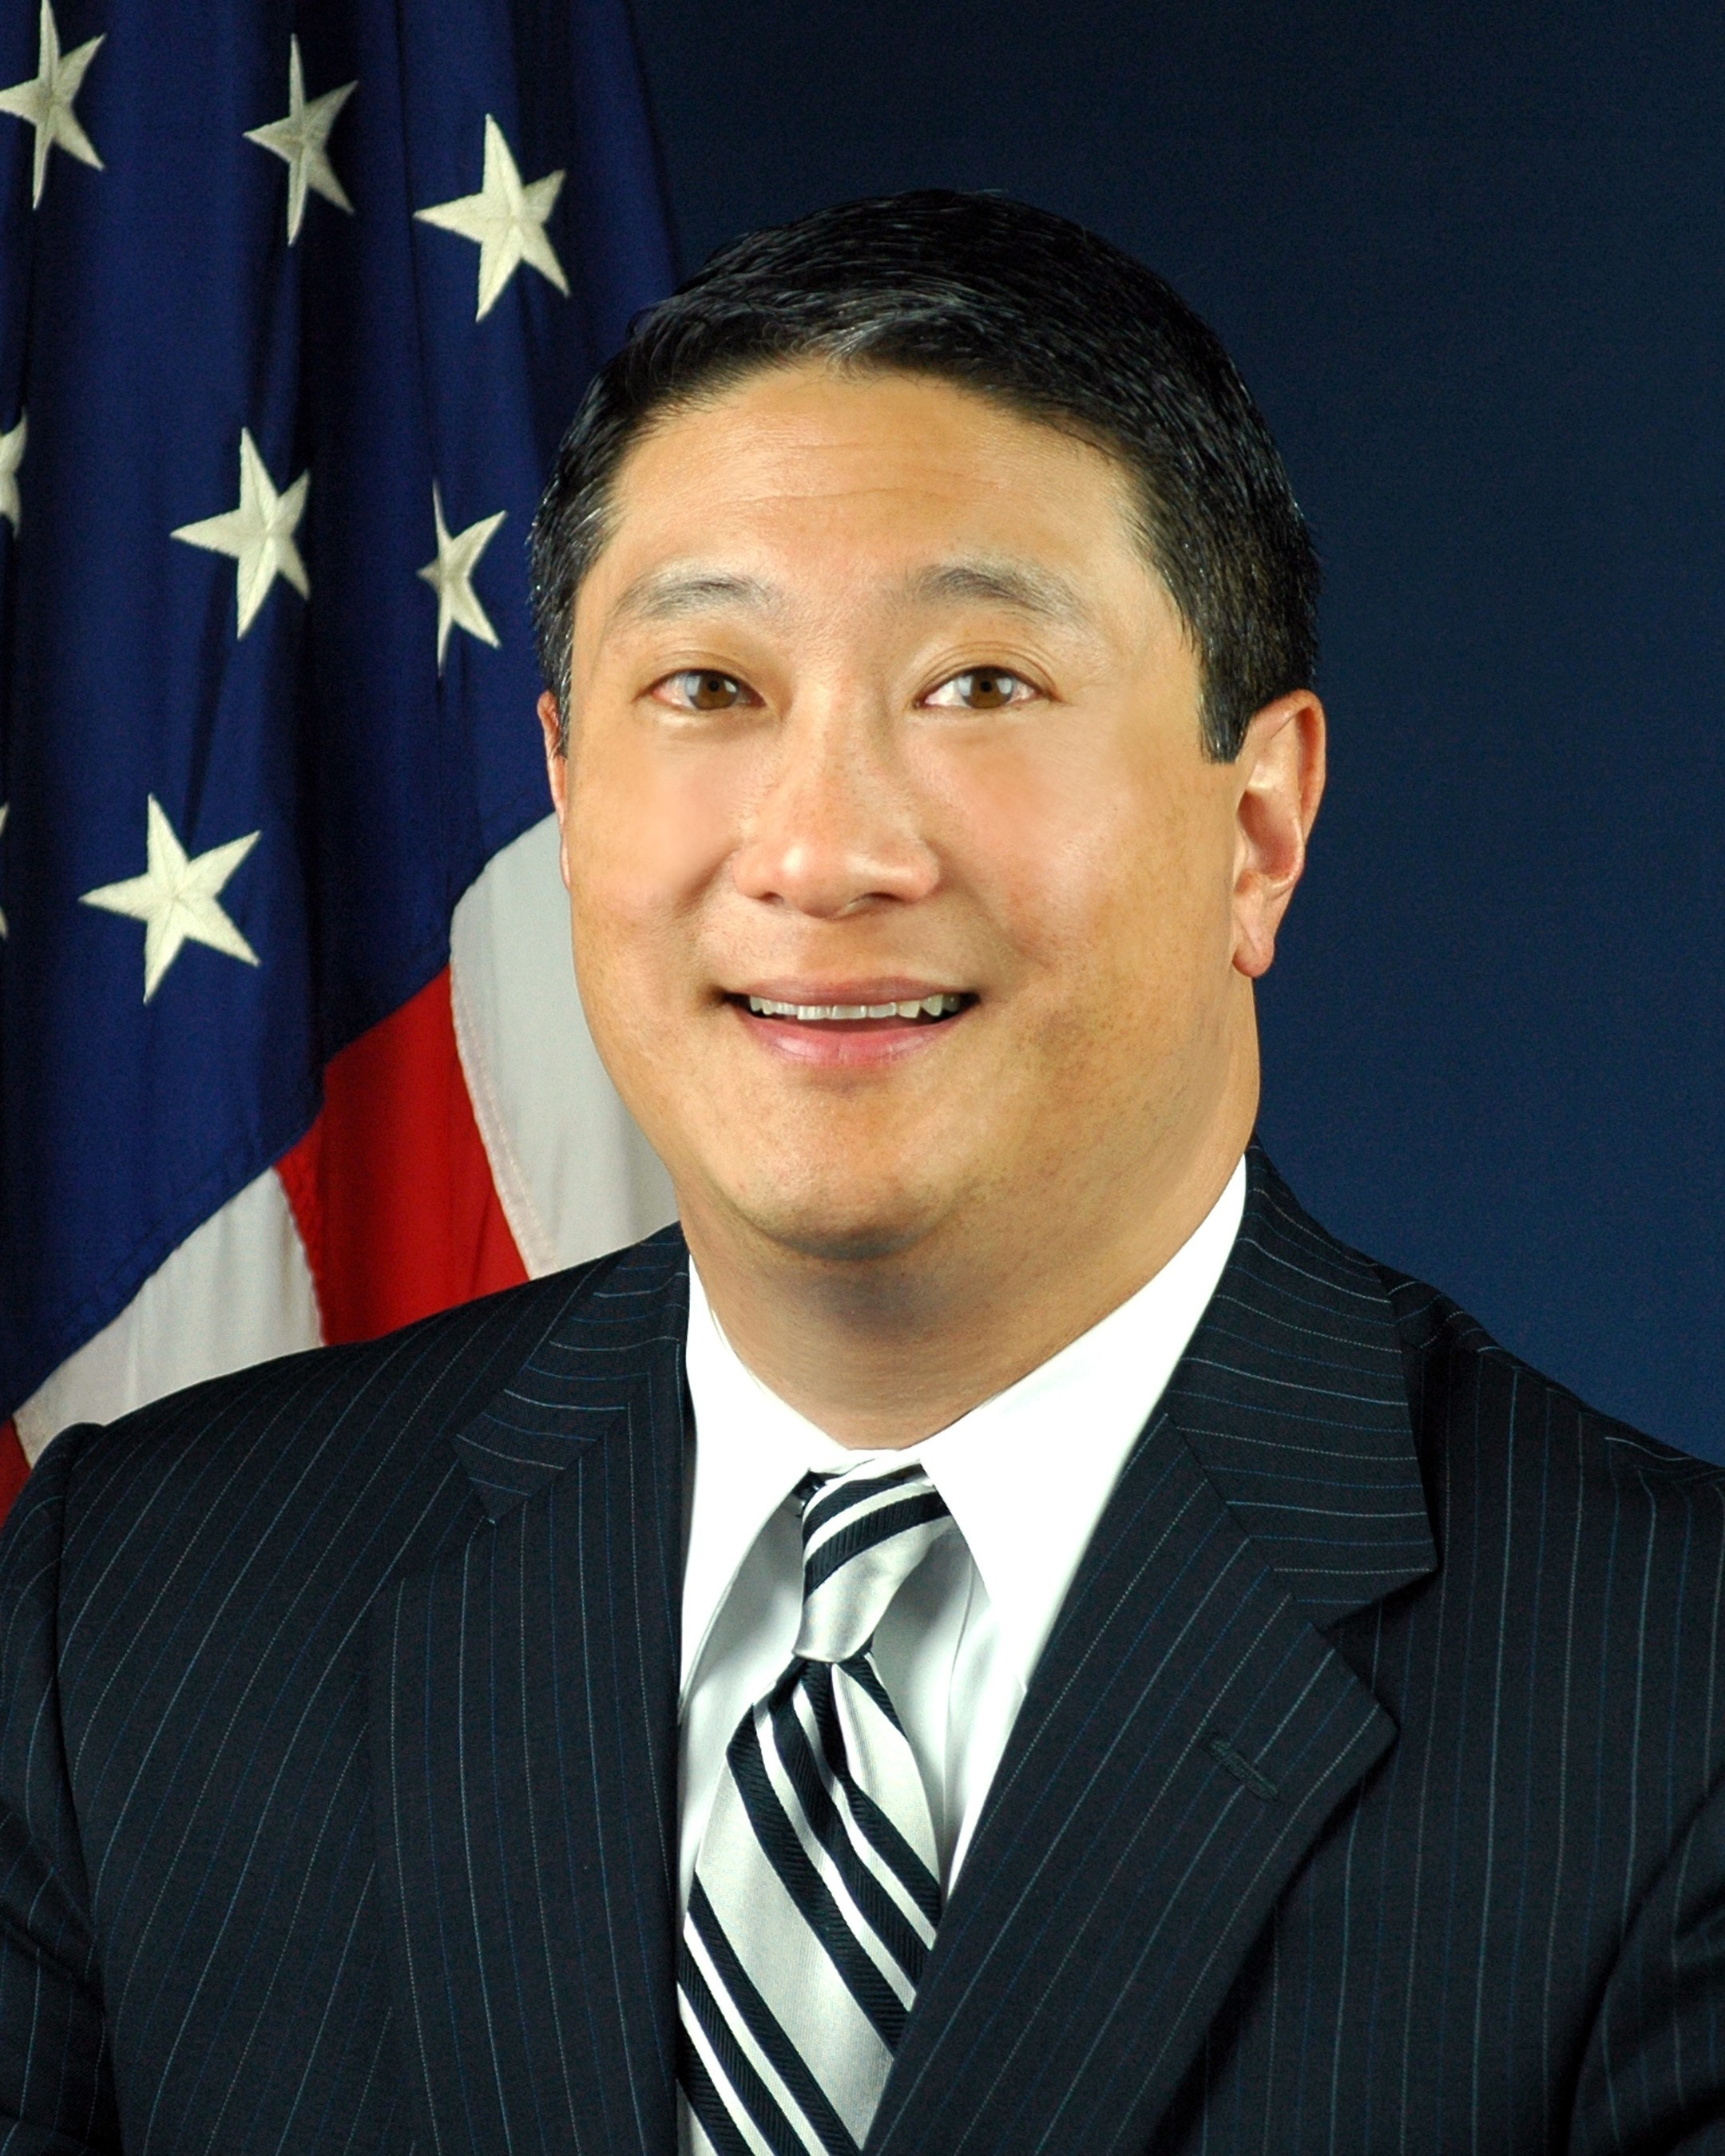 State Road Auto Sales >> Hyundai Motor Company's Washington, DC Office Names David Kim Vice President Of Government Affairs